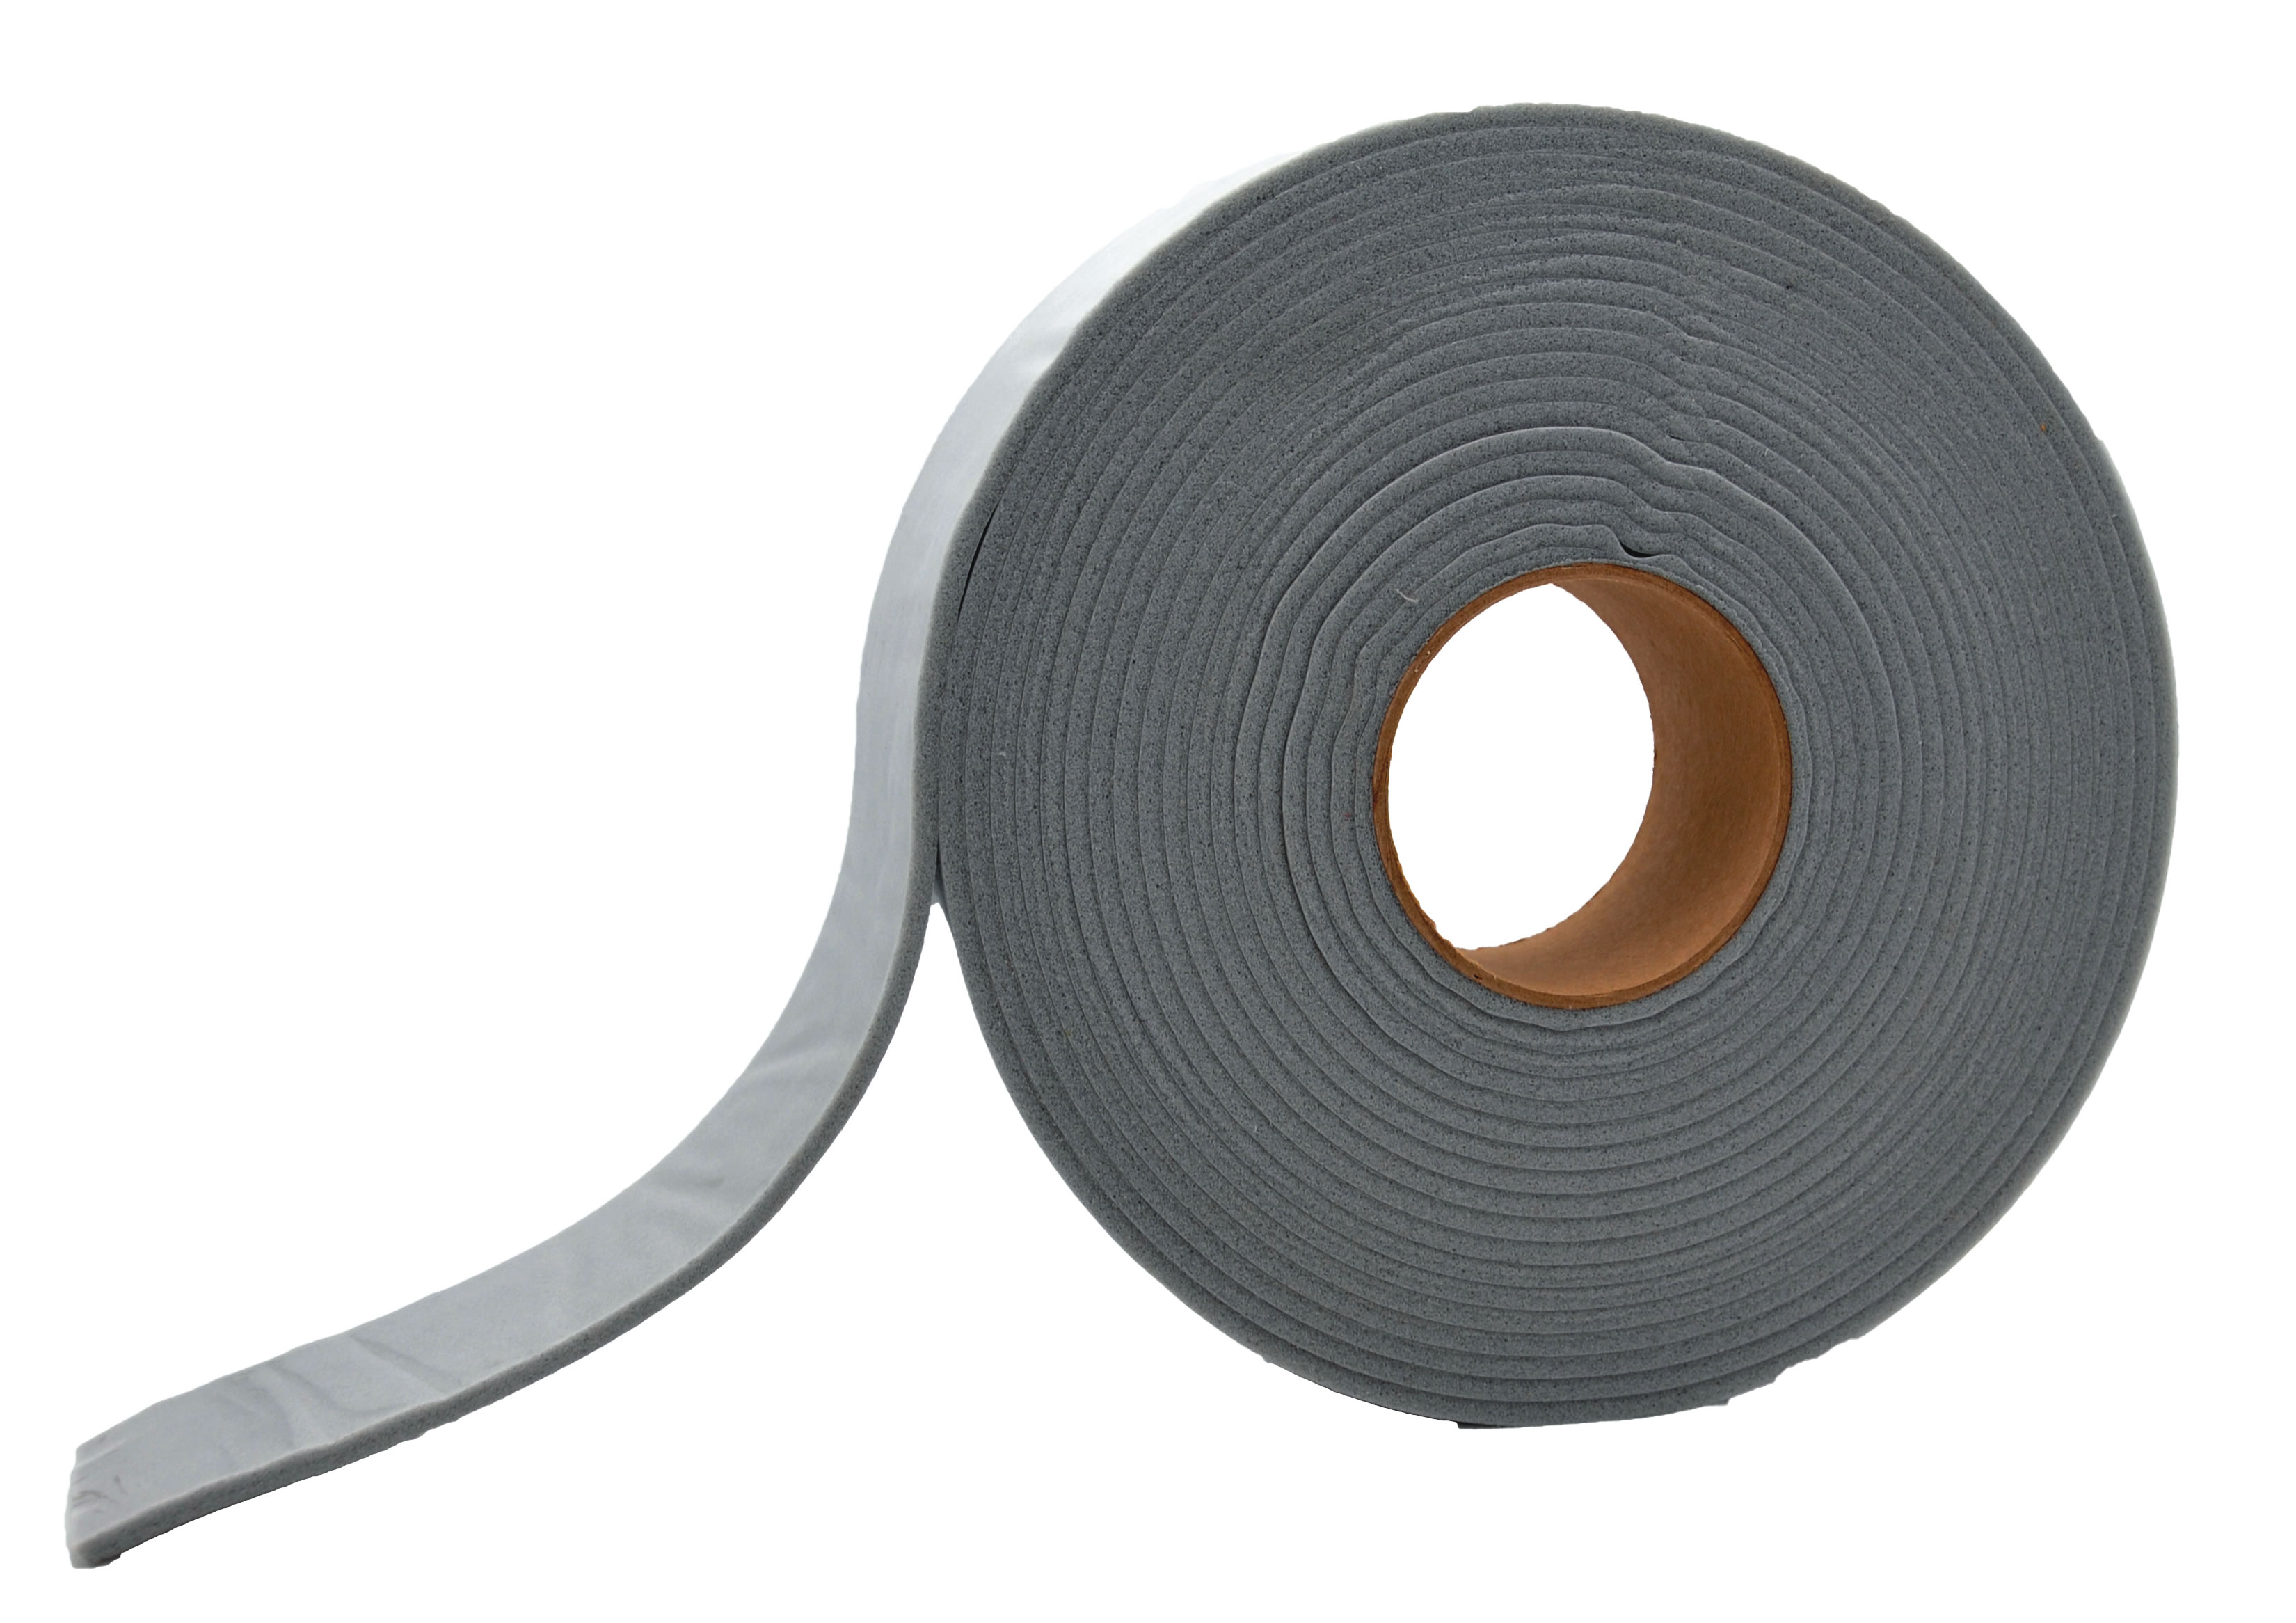 018-141125 AP Products Roof Vent Insulation 30 Feet Length x 1-1/2